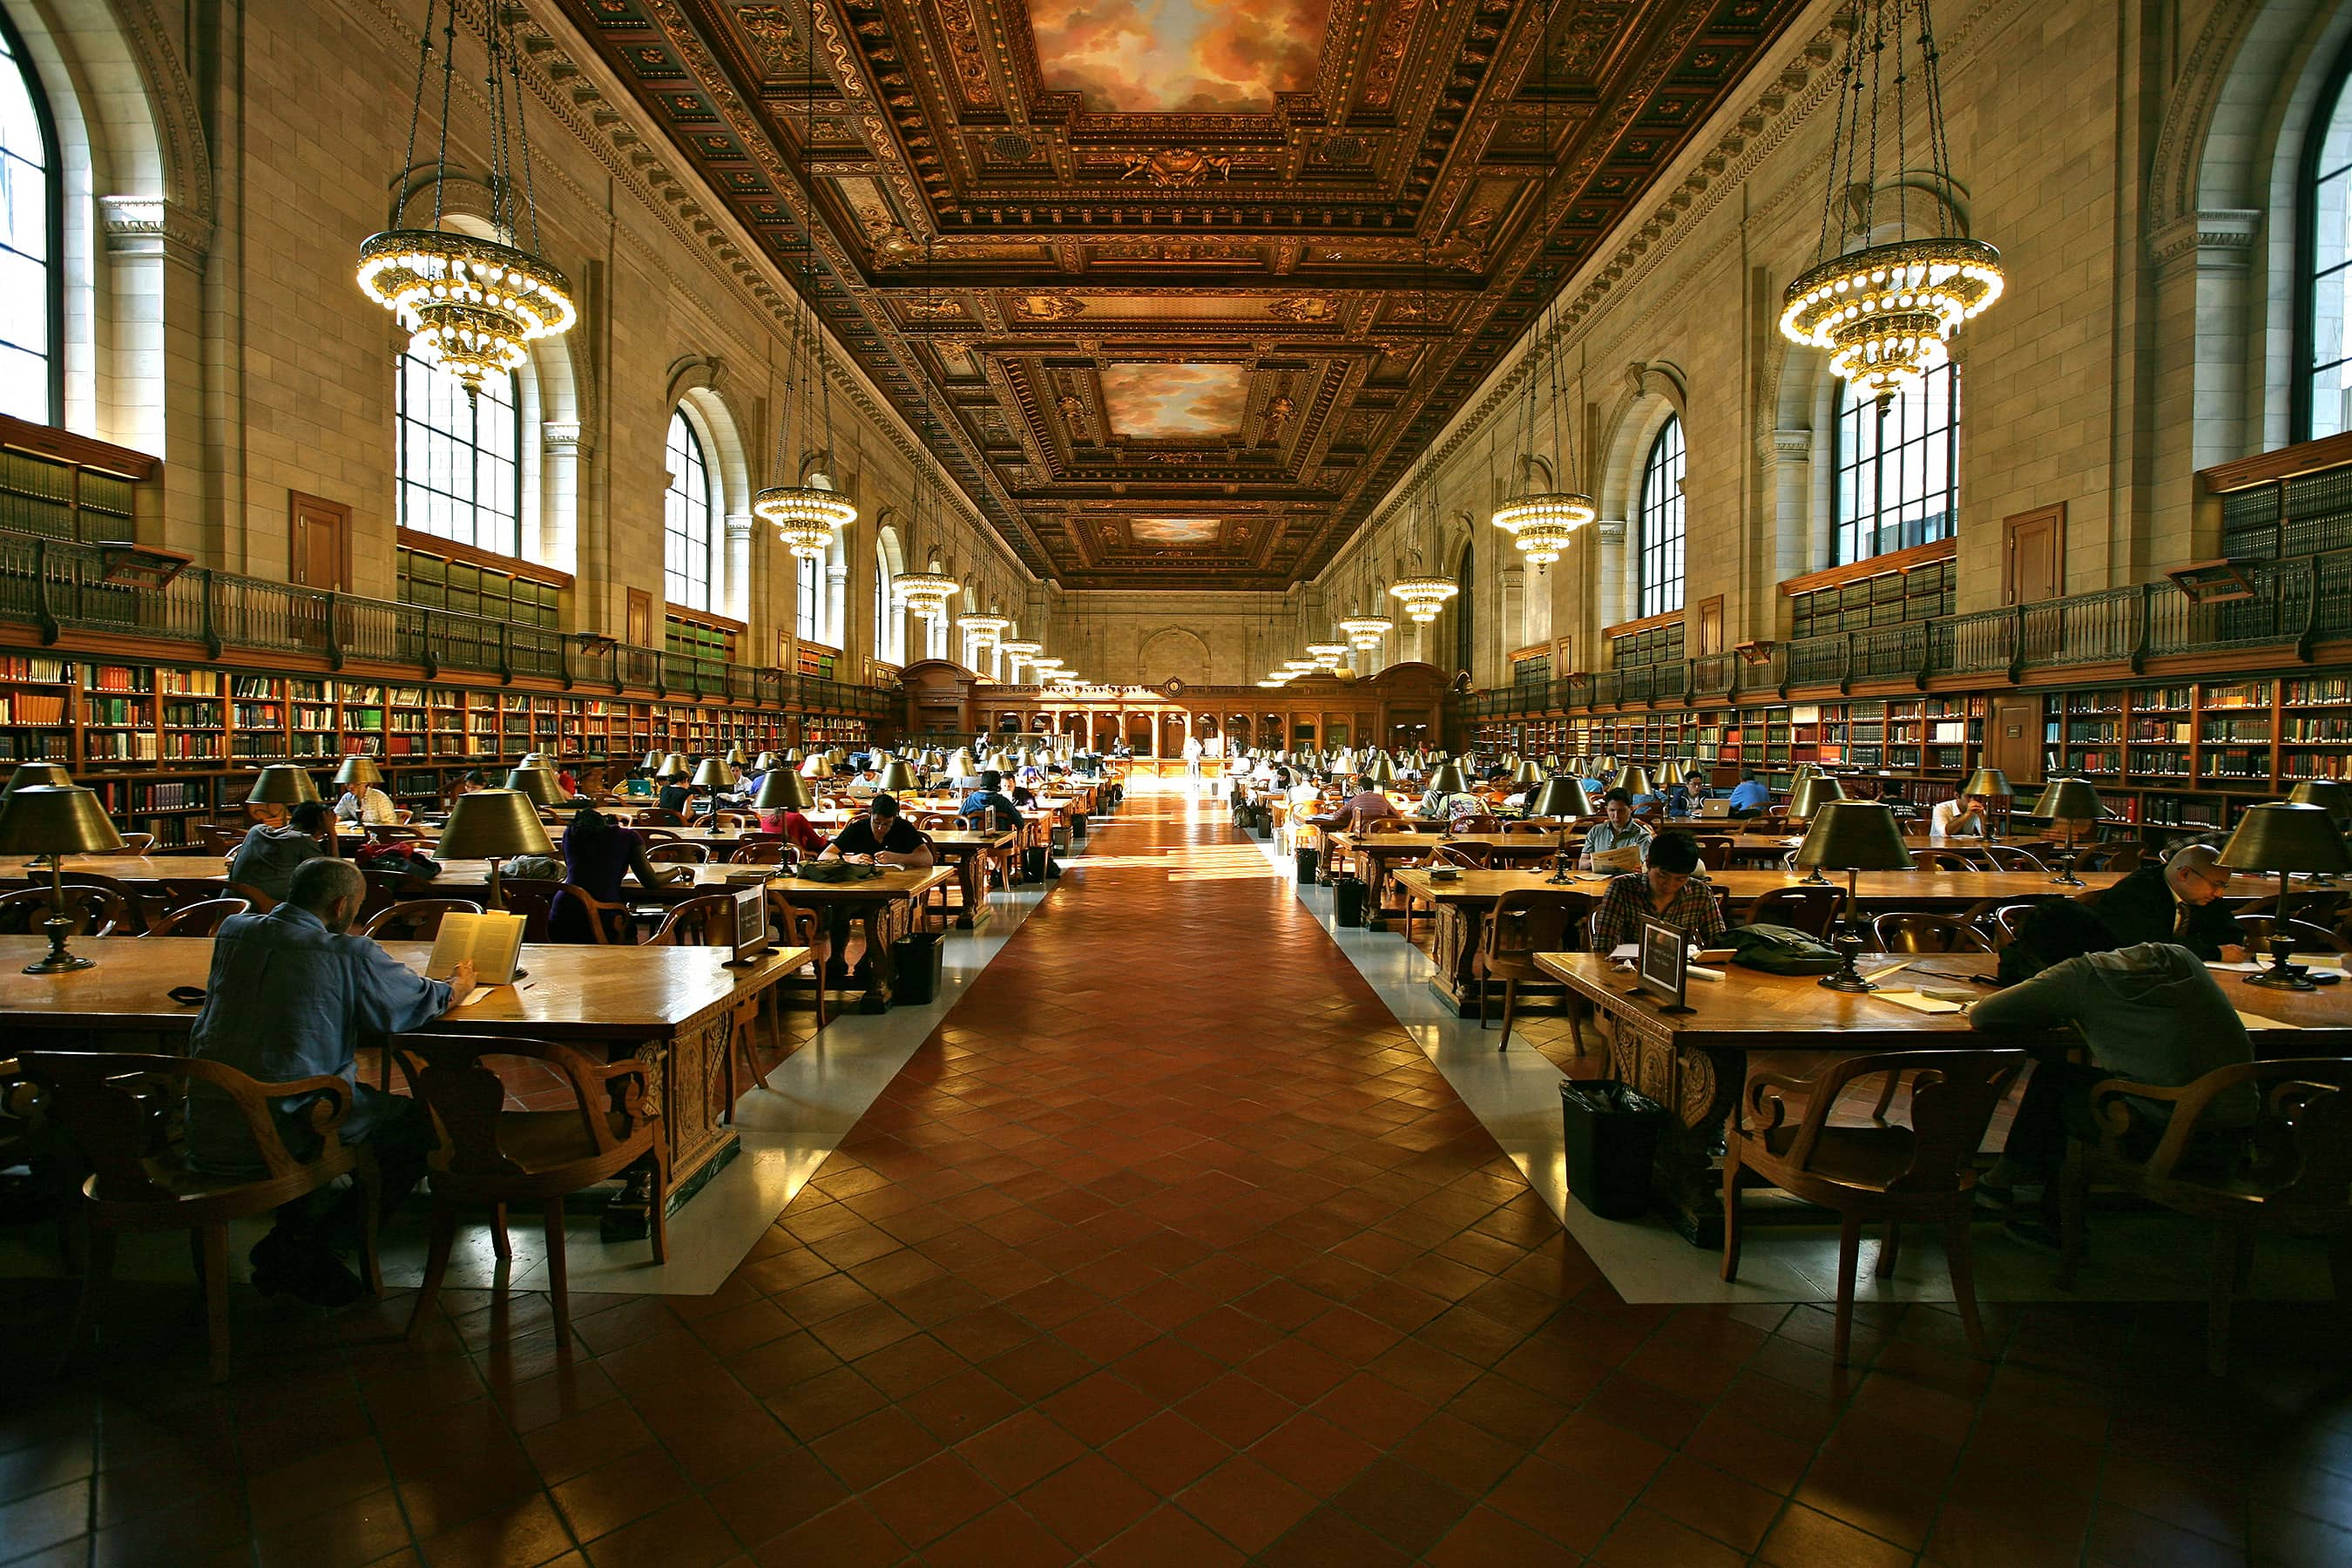 The Rose Main Reading Room at the New York Public Library